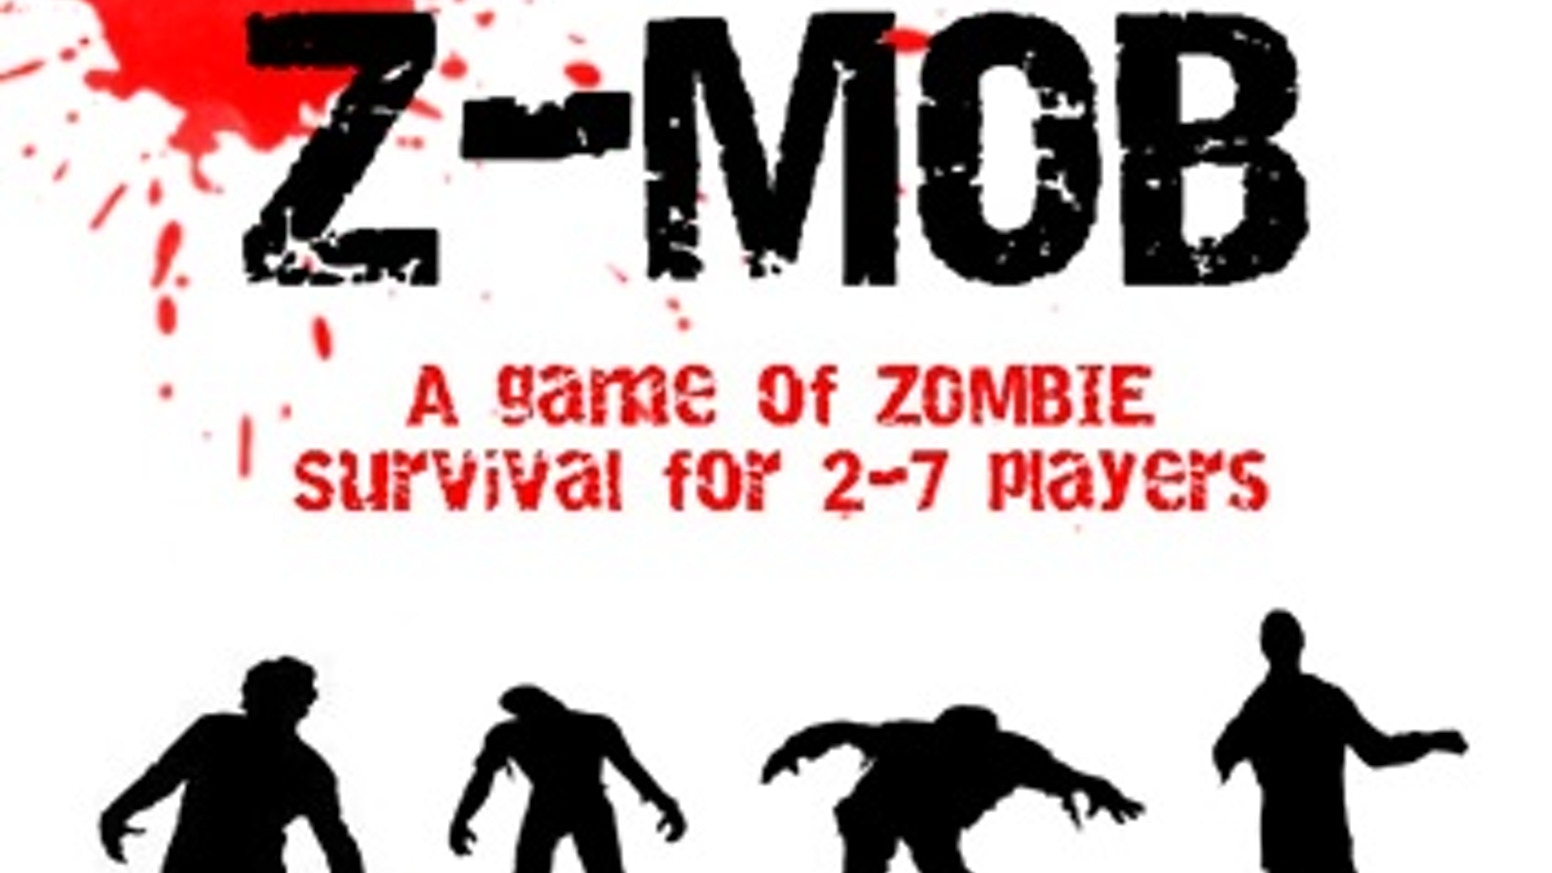 Six survivors must defend a lone scientist from a steadily increasing  zombie horde while they perfect a cure to save the world